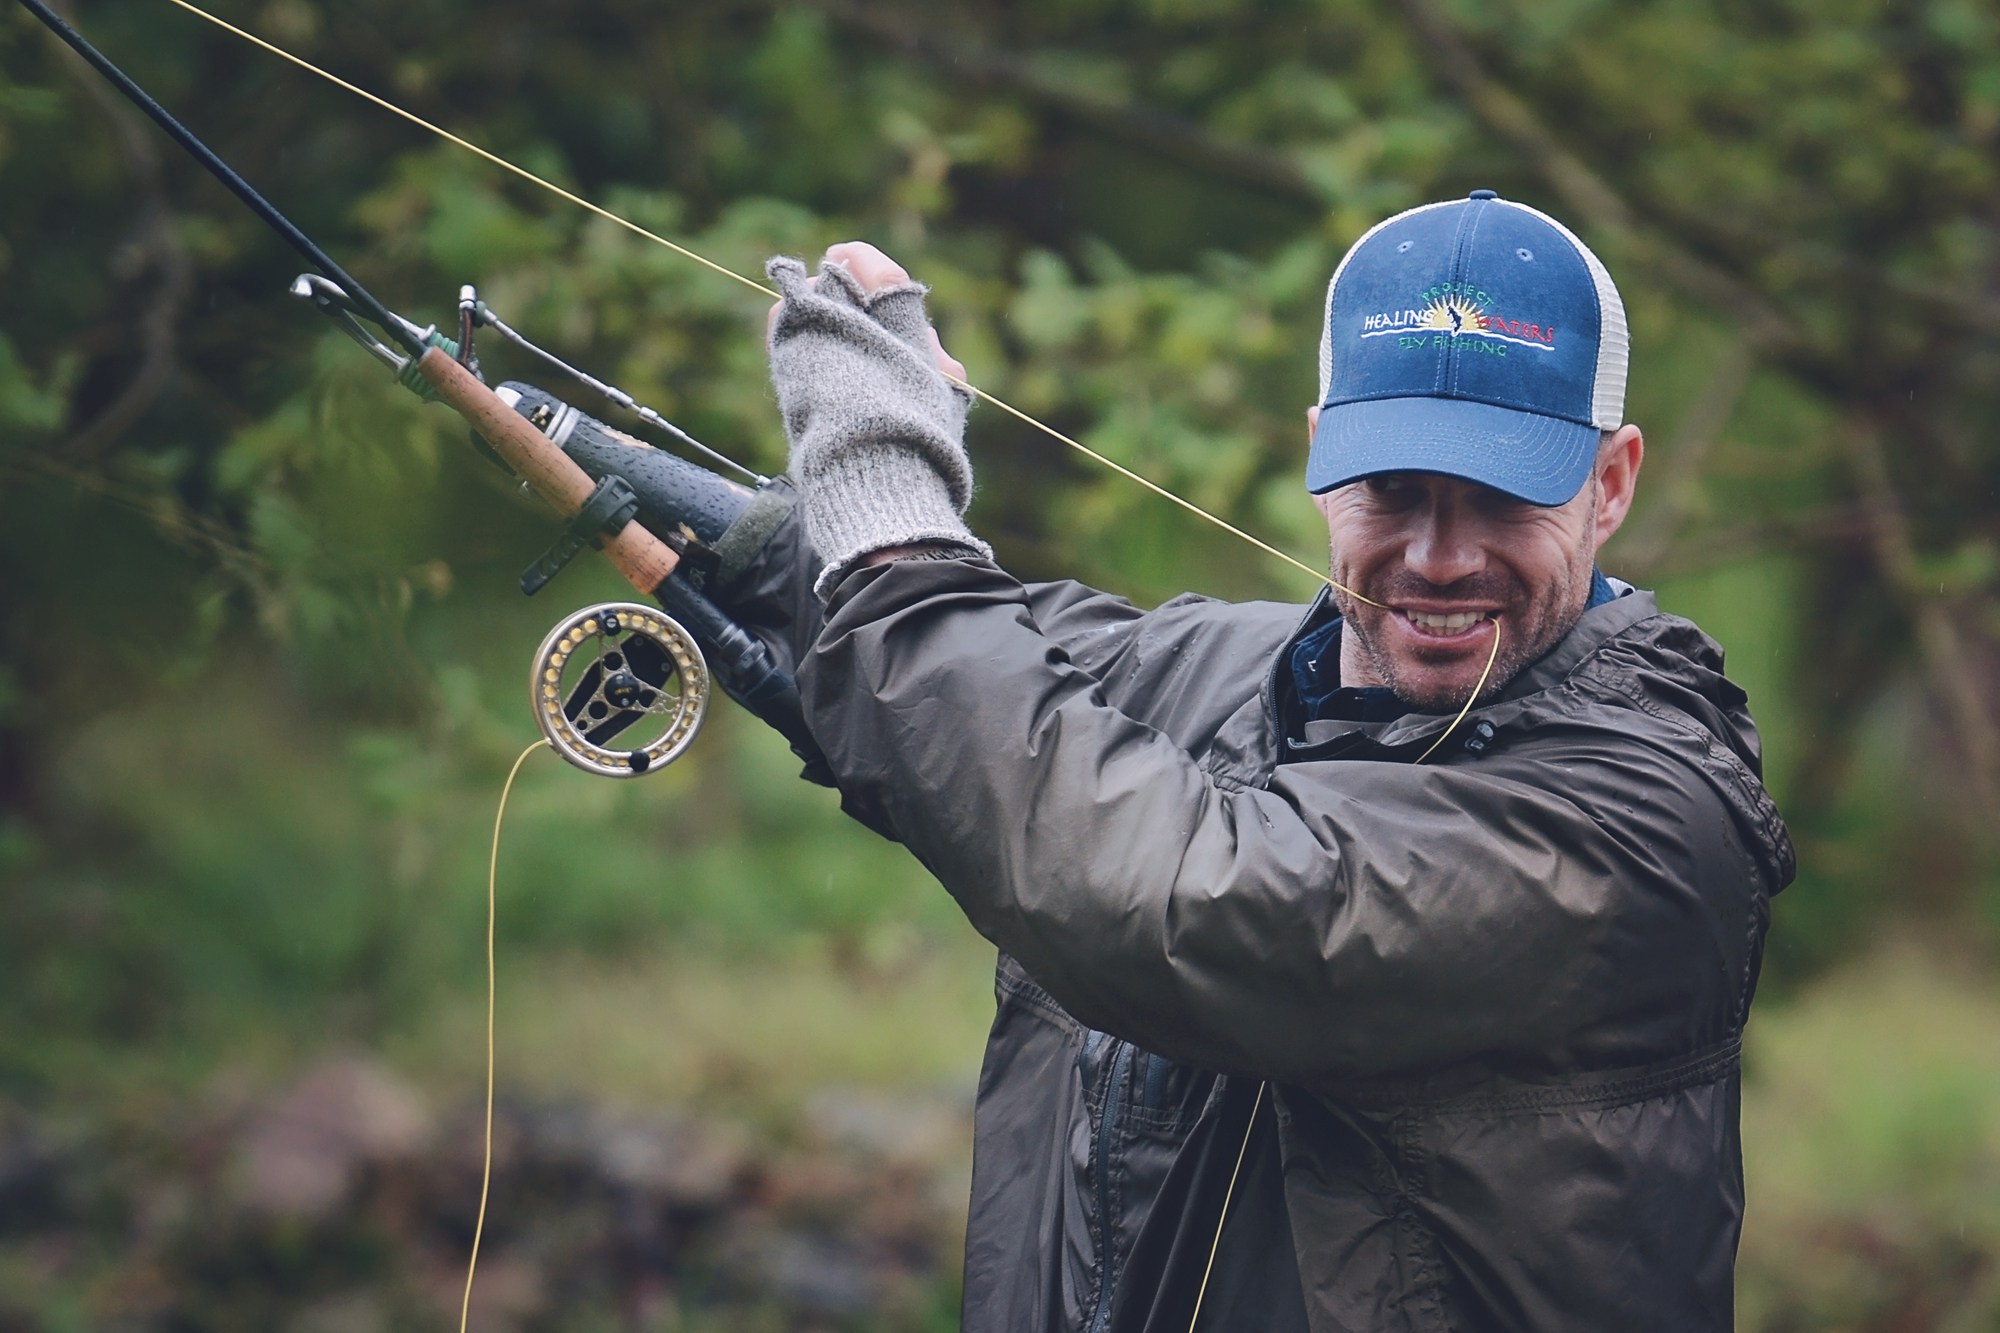 The Jordan Spieth Family Foundation Partners with Project Healing Waters Fly Fishing